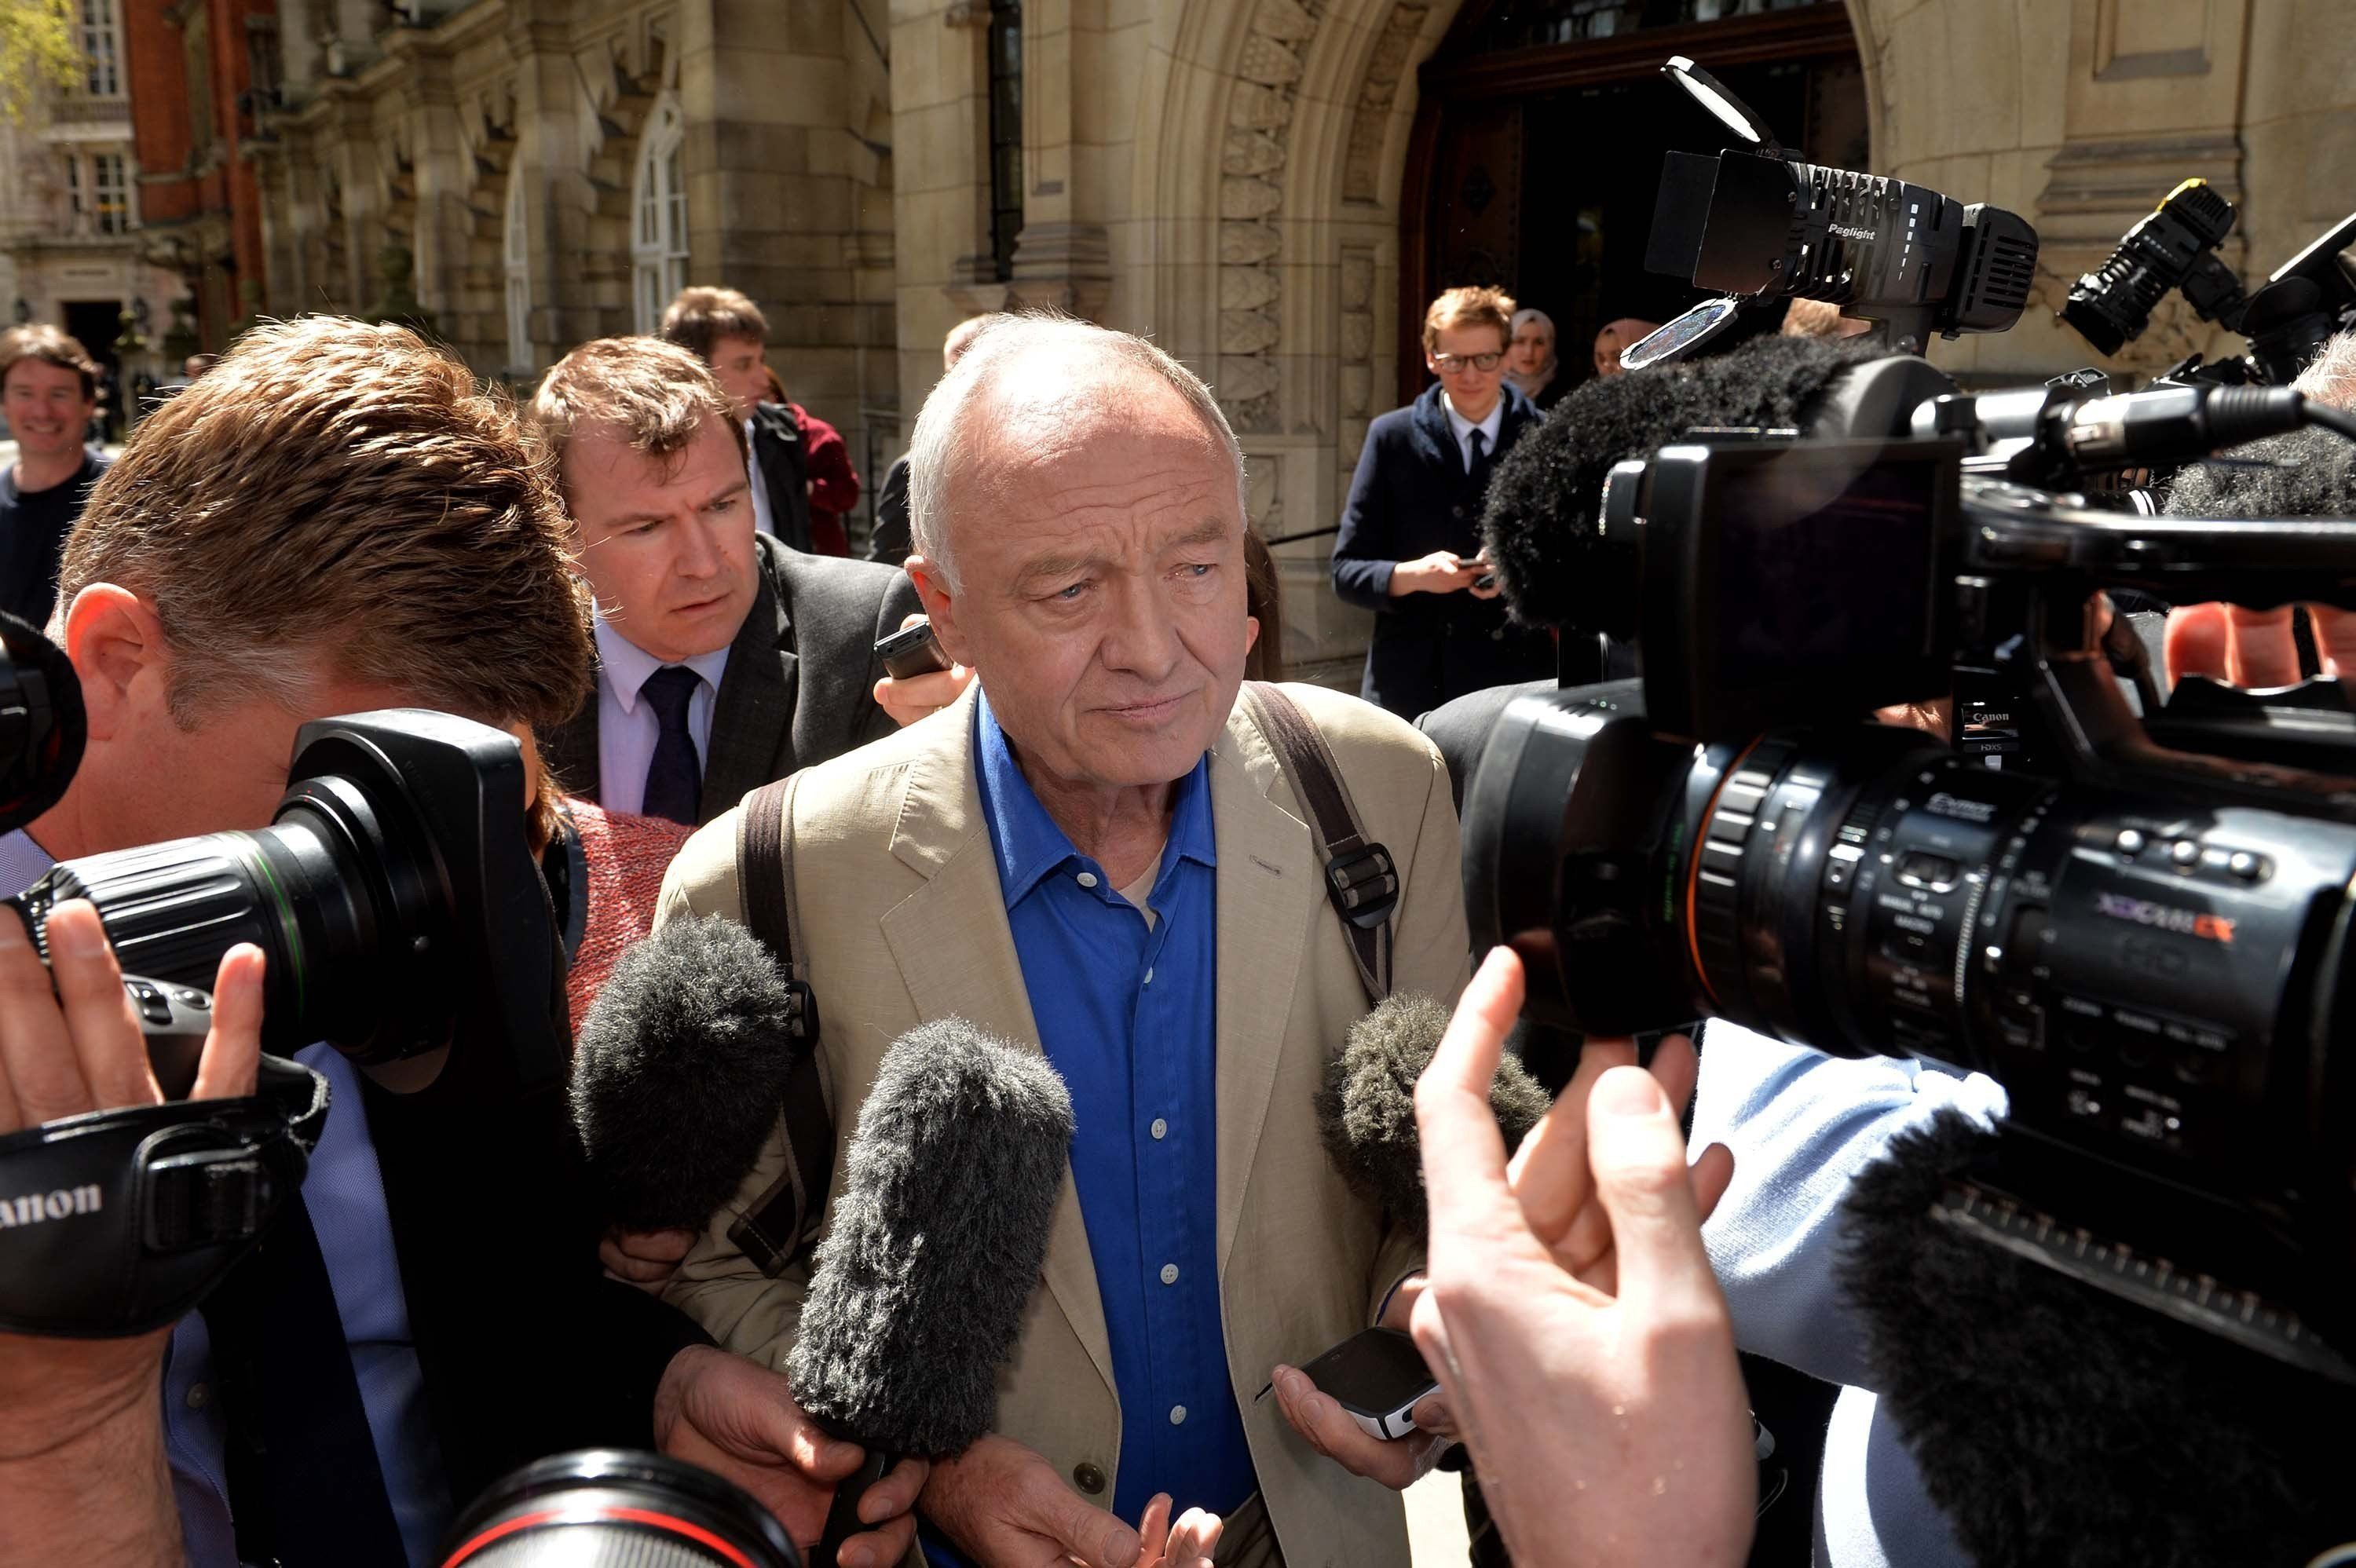 Labour extends Ken Livingstone's suspension over antisemitism claims